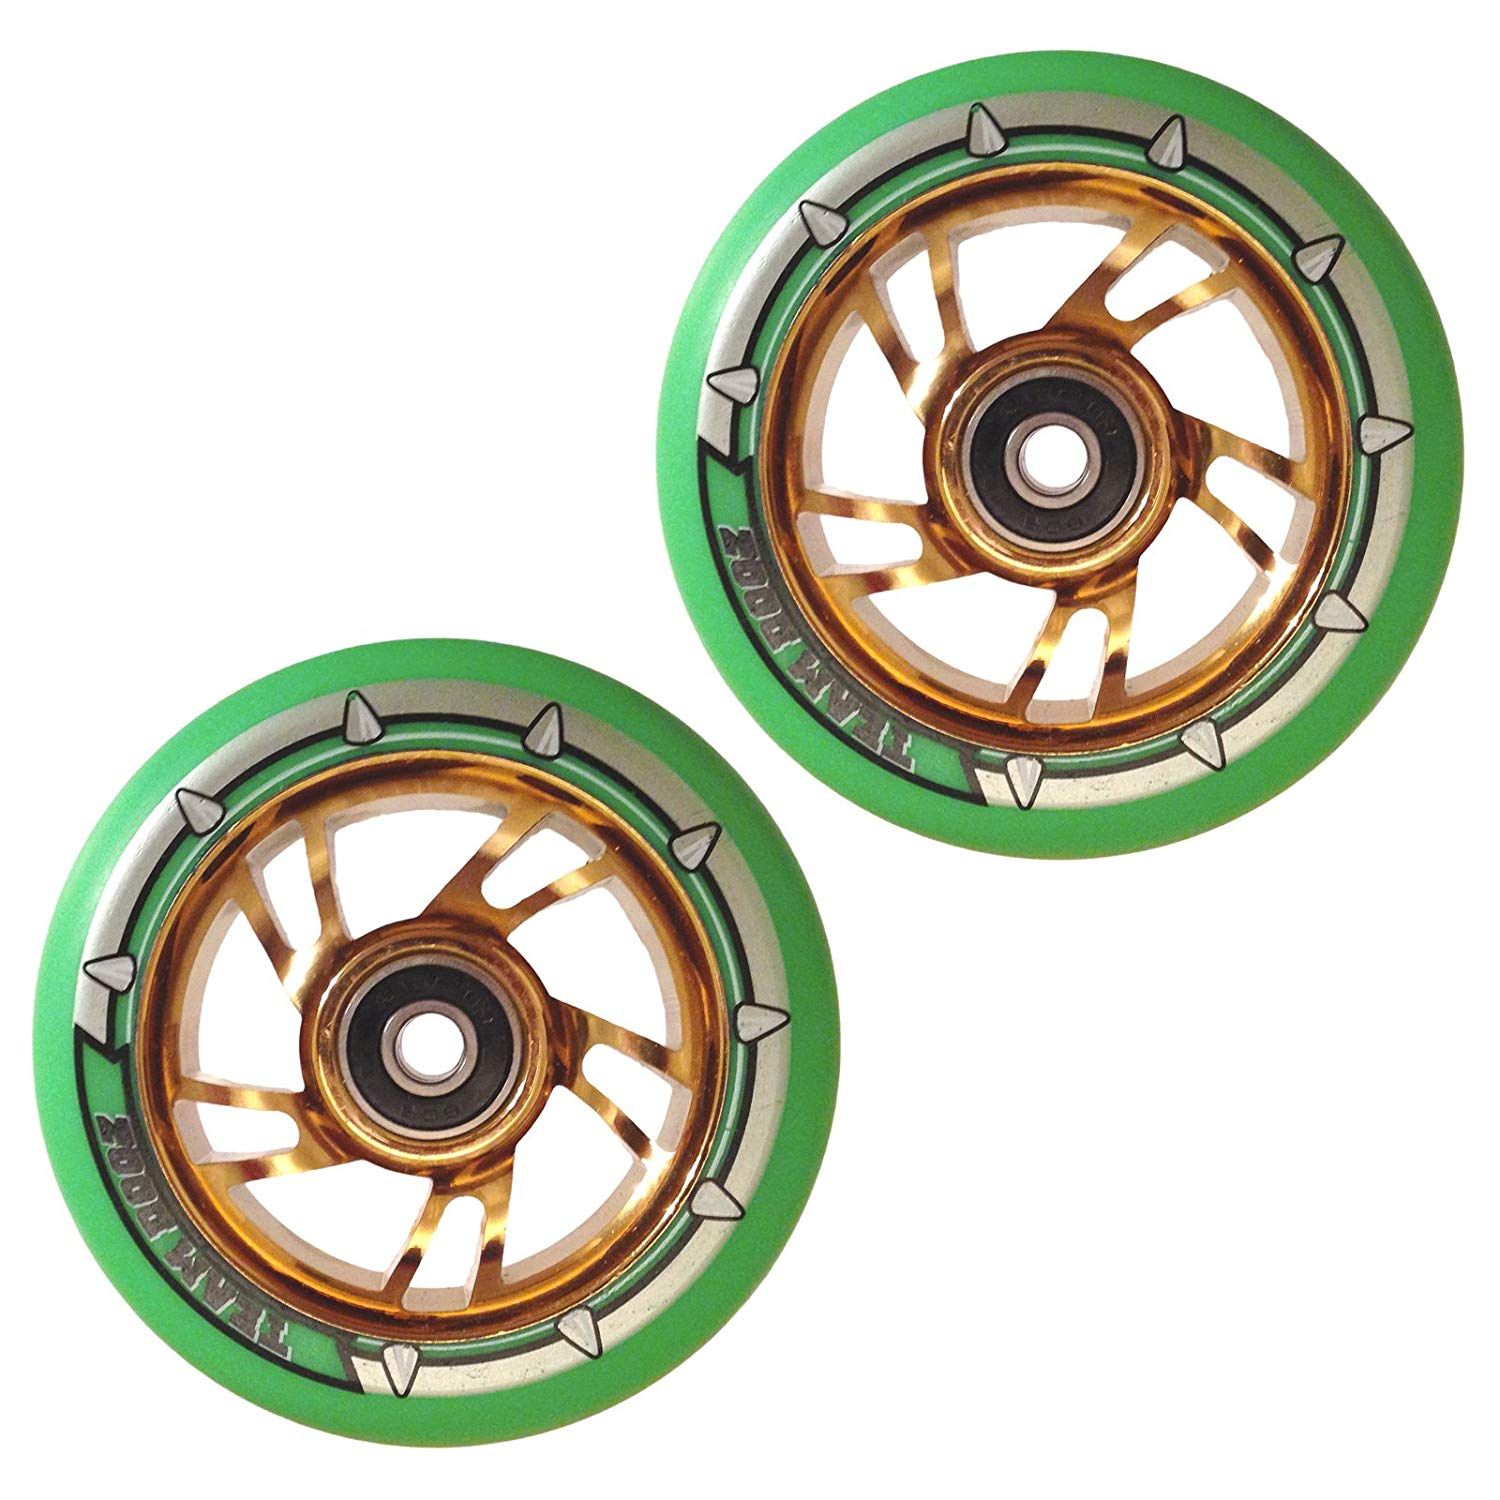 Team Dogz 100mm Swirl Scooter Wheels - Gold Cores Green Tyres (Pair)